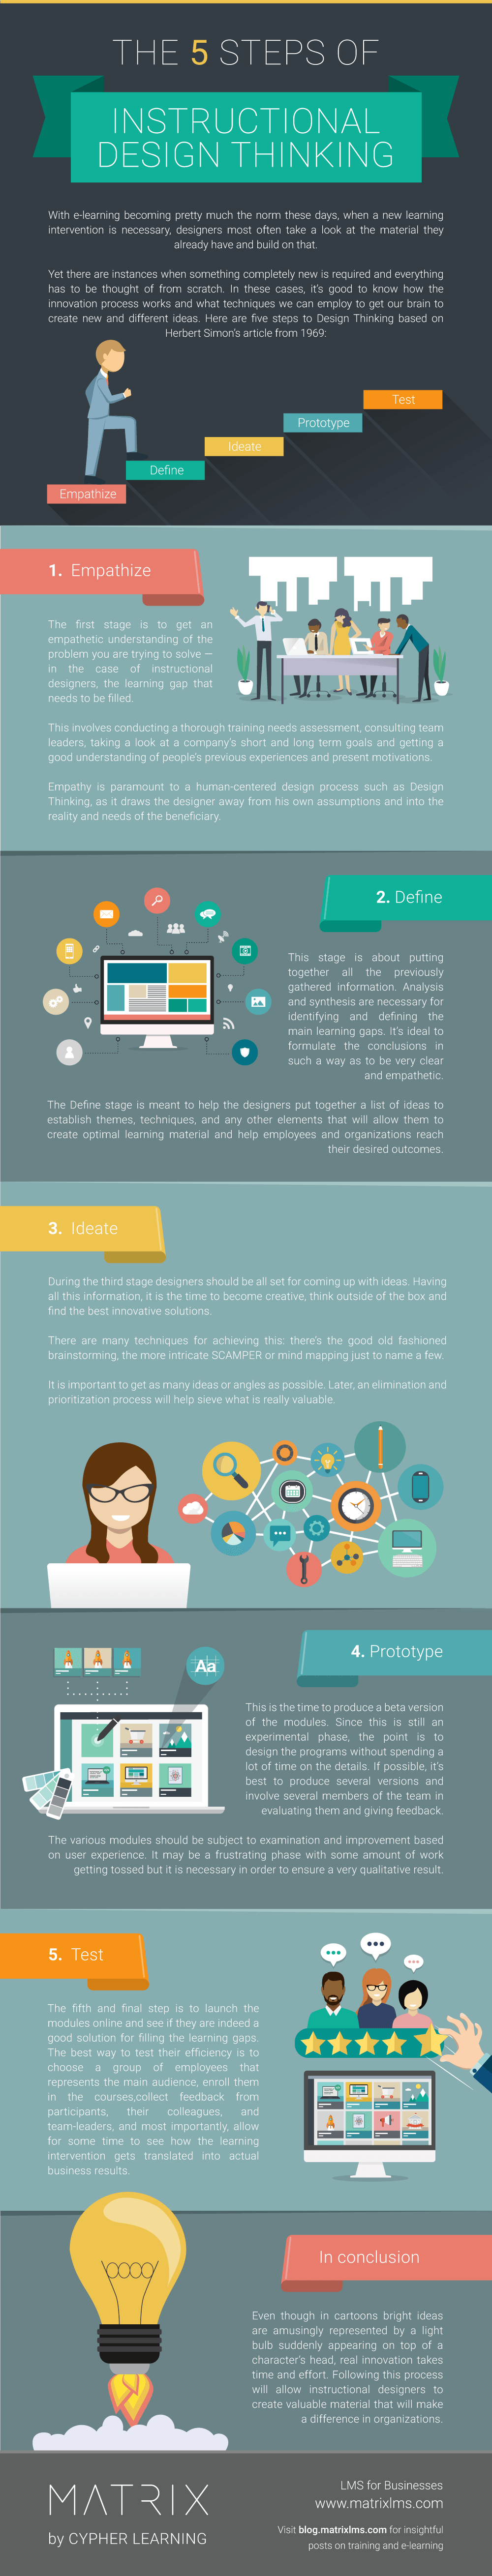 The 5 Steps of Instructional Design Thinking Infographic